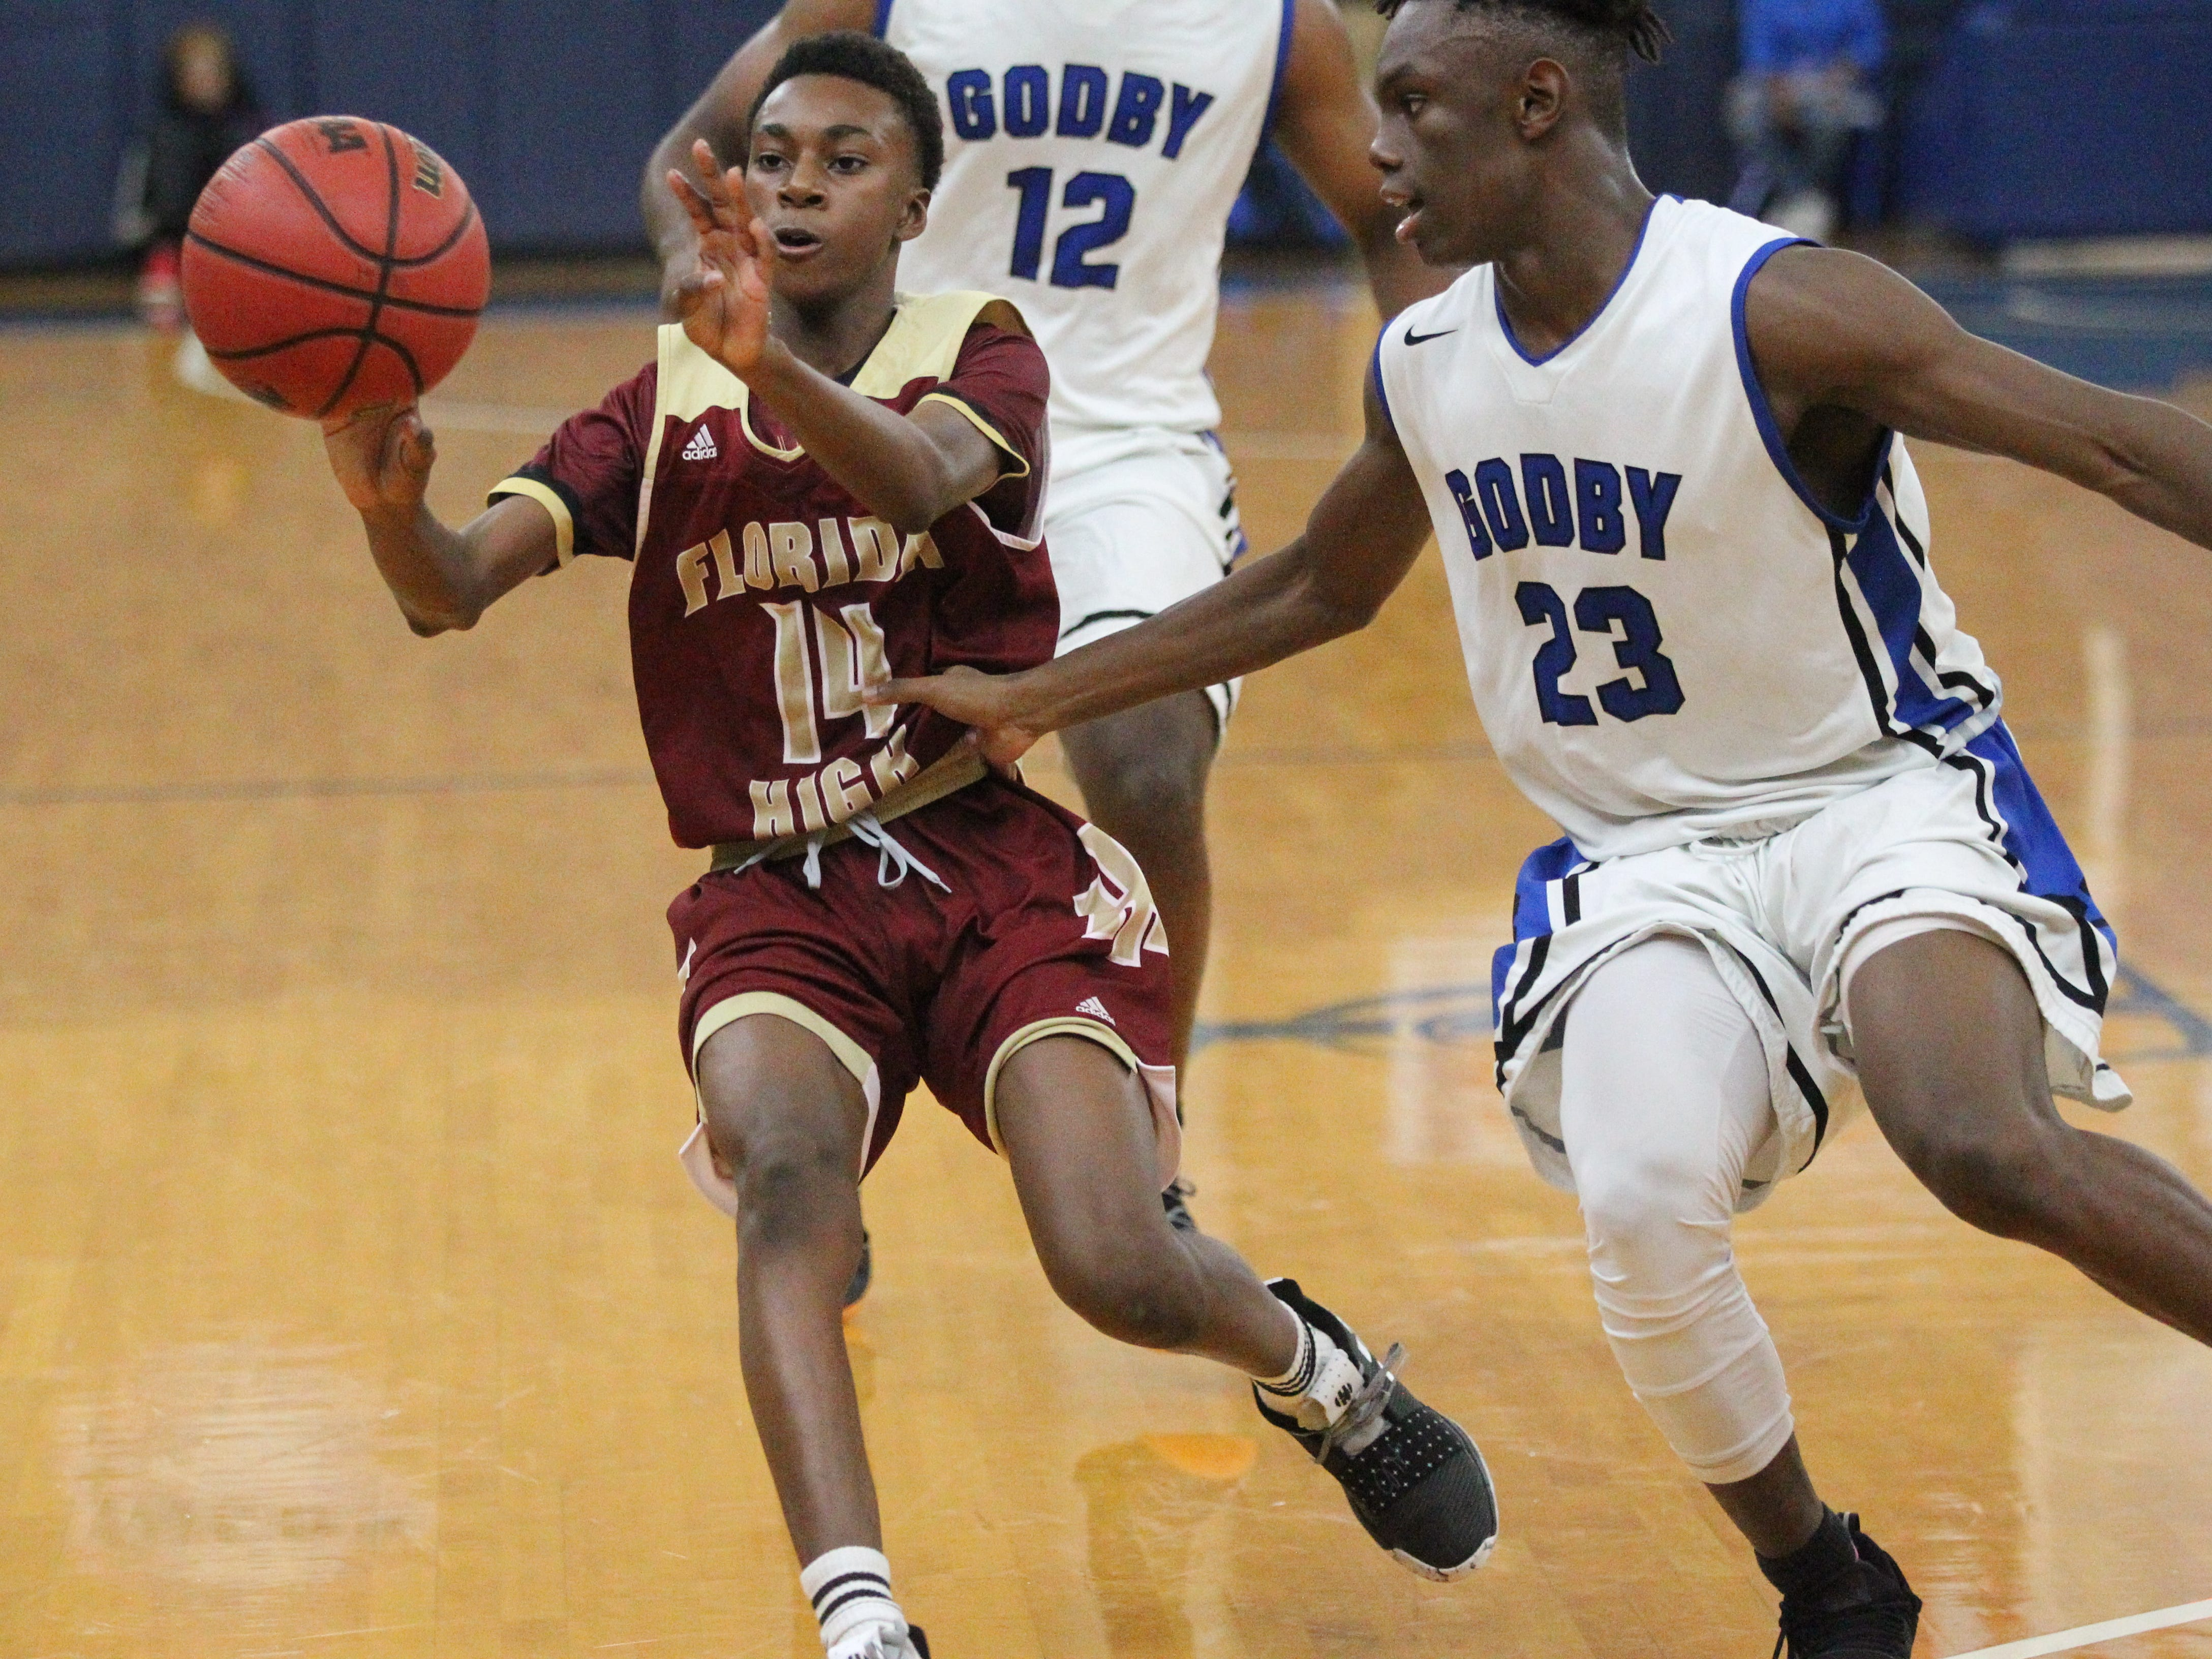 Florida High eighth-grader Anthony Robinson makes a pass to the corner as Godby's De'Shawn Rucker guards during the 2018 Capital City Holiday Classic at TCC.